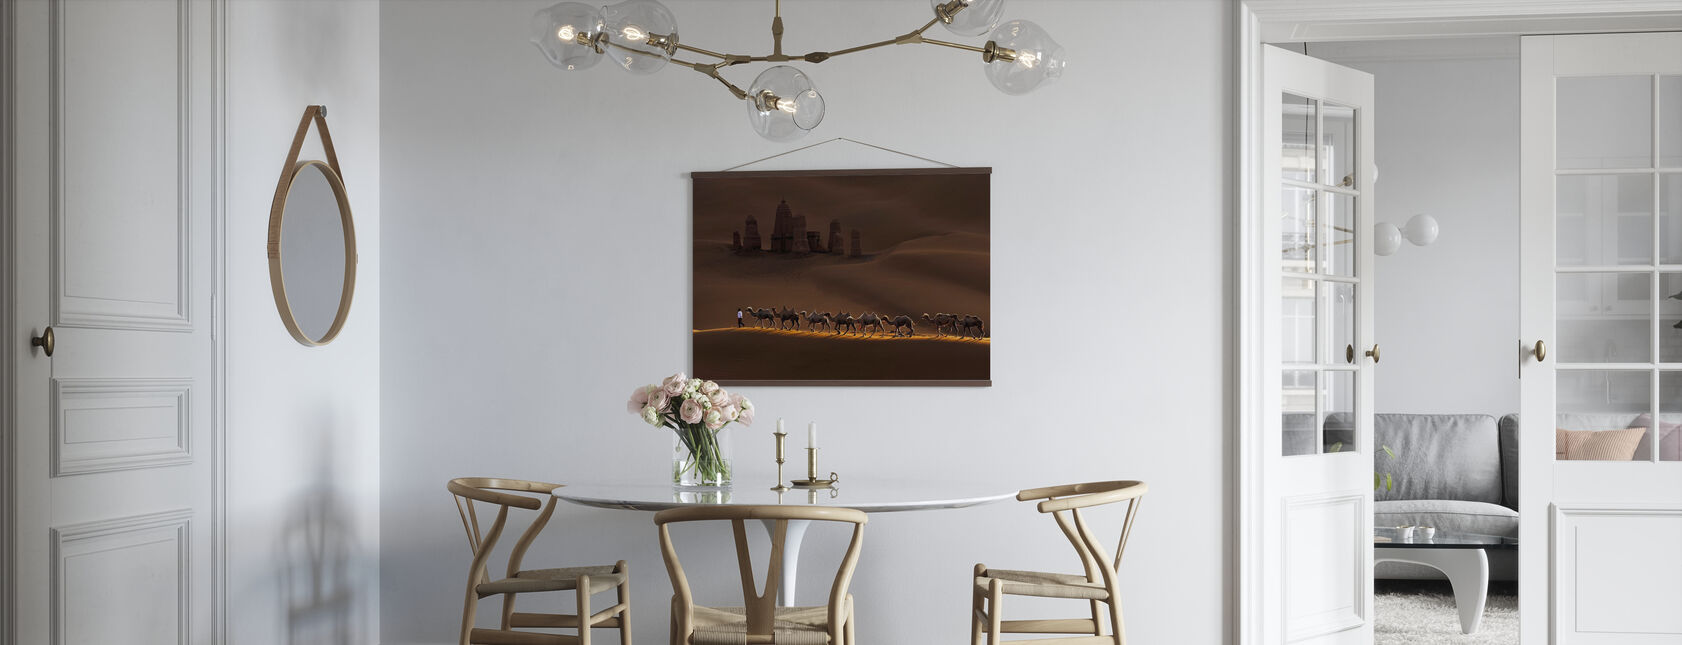 Castle and Camels - Poster - Kitchen